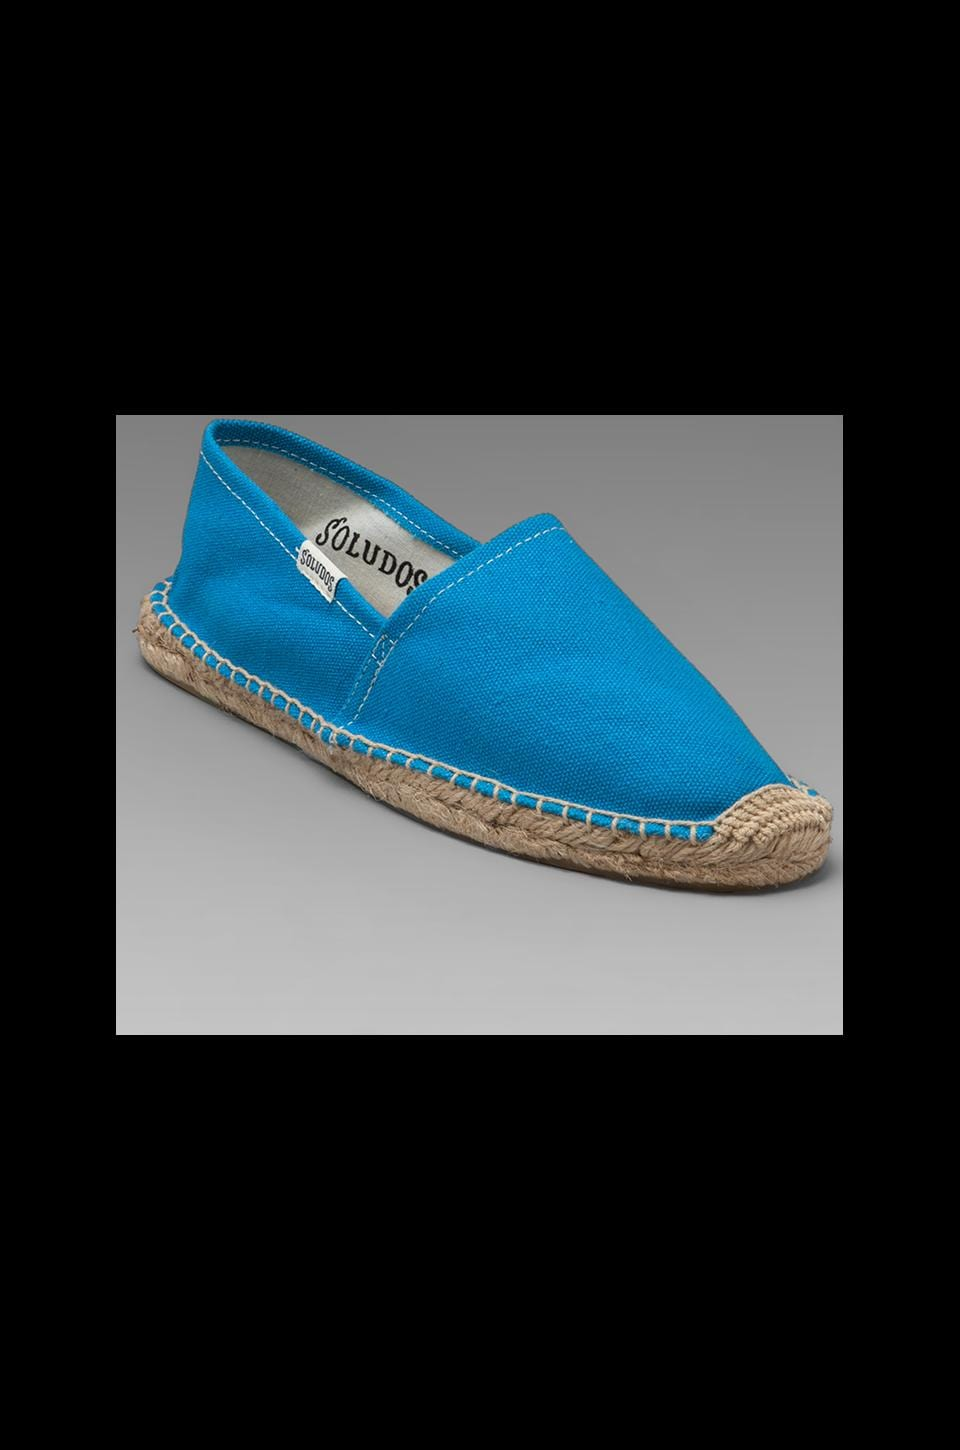 Soludos Dali Flat in Blue